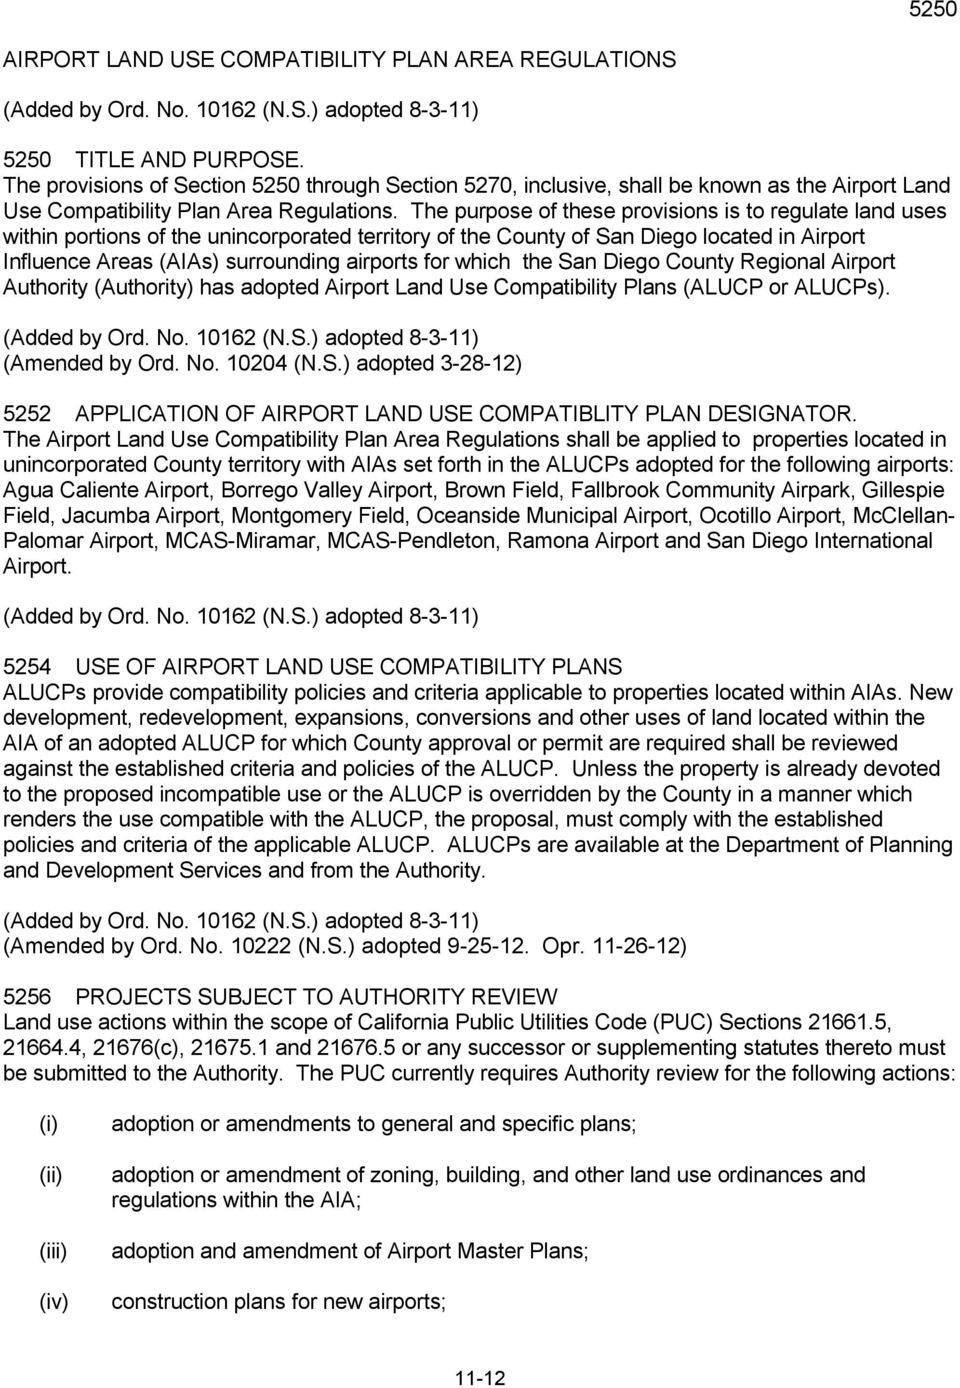 The purpose of these provisions is to regulate land uses within portions of the unincorporated territory of the County of San Diego located in Airport Influence Areas (AIAs) surrounding airports for